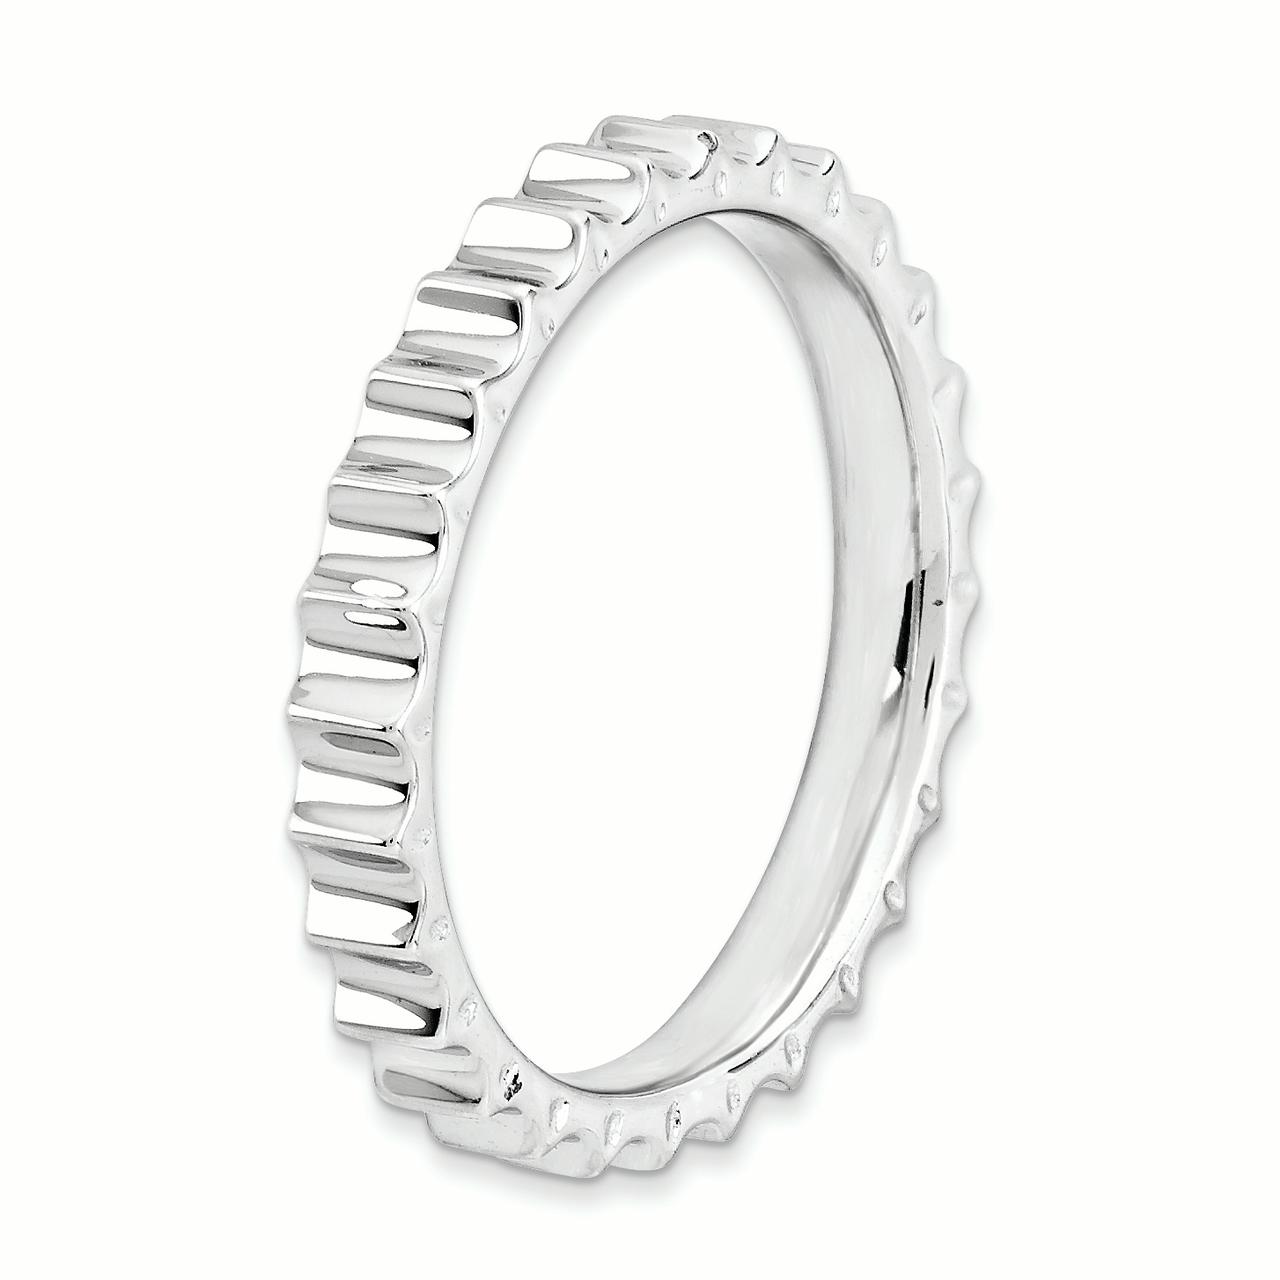 925 Sterling Silver Band Ring Size 6.00 Stackable Textured Fine Jewelry Gifts For Women For Her - image 3 de 4